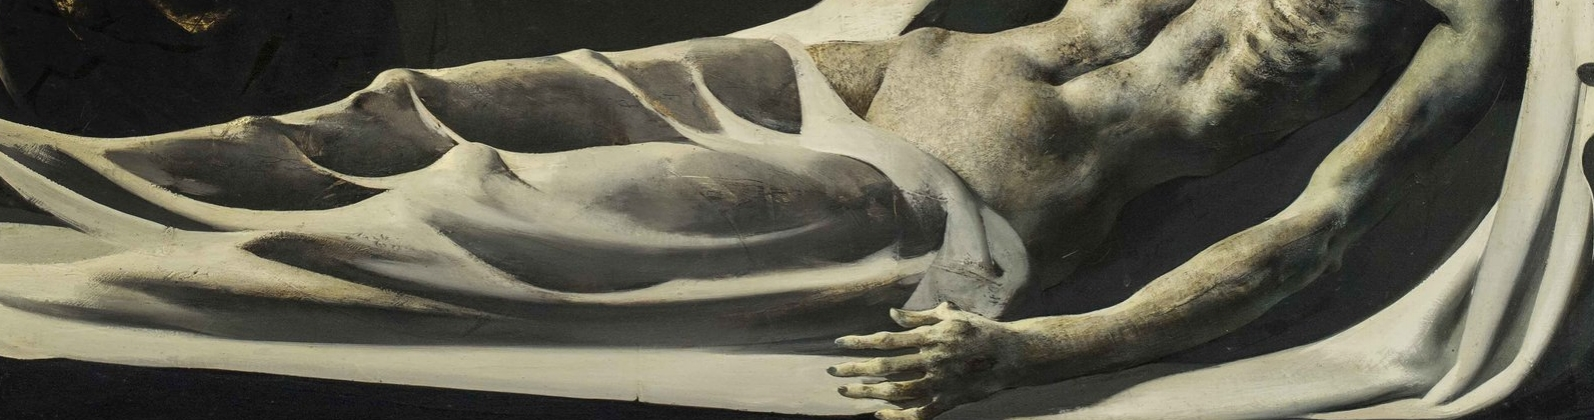 Marcel Delmotte, Shrouded figure, detail image